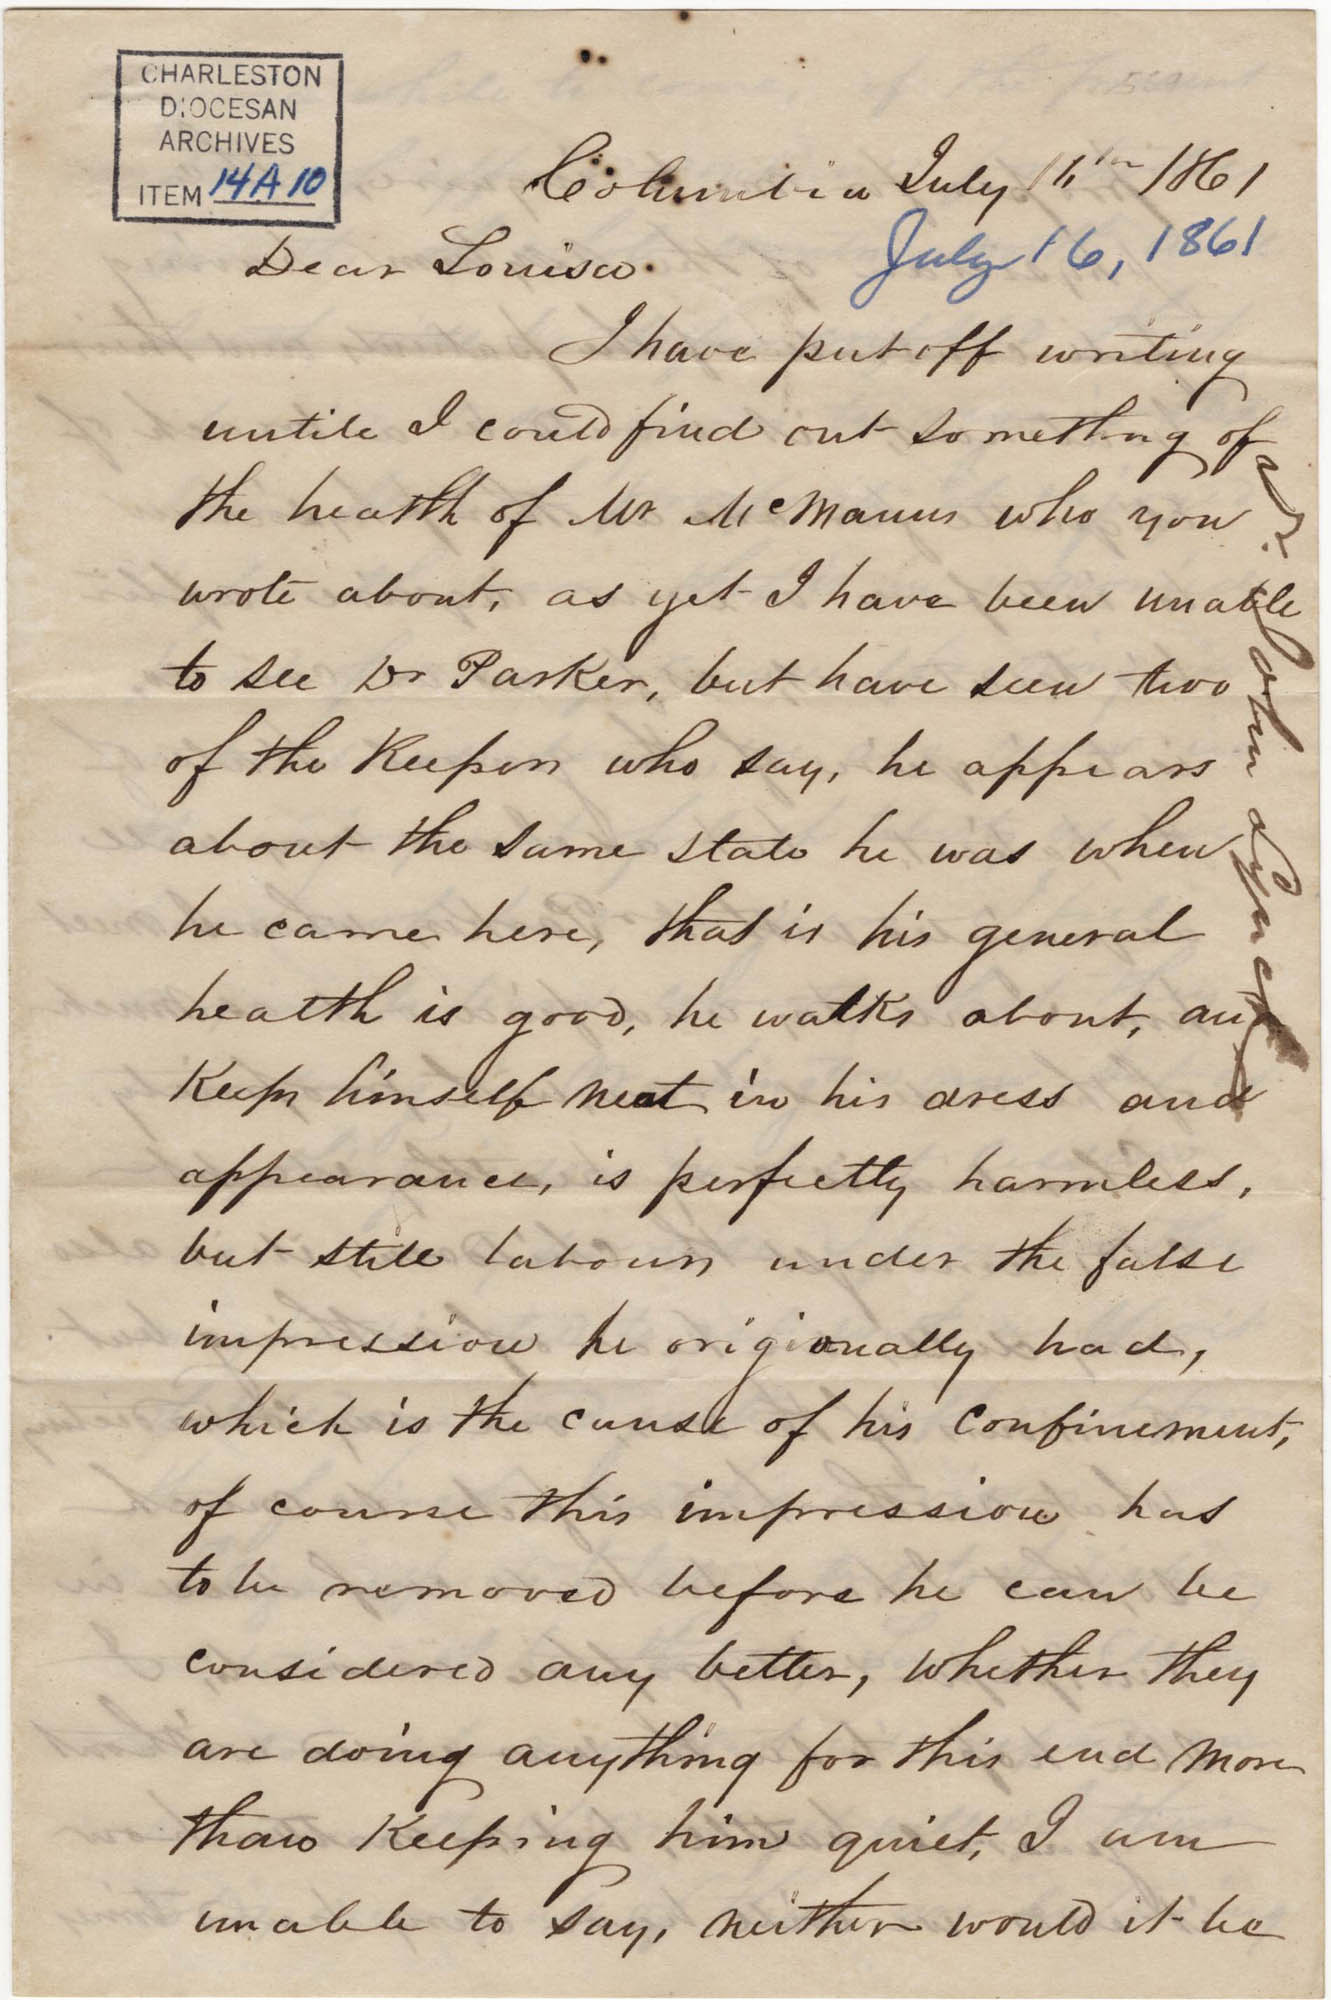 163. John Lynch to Louisa (?) -- July 16, 1861